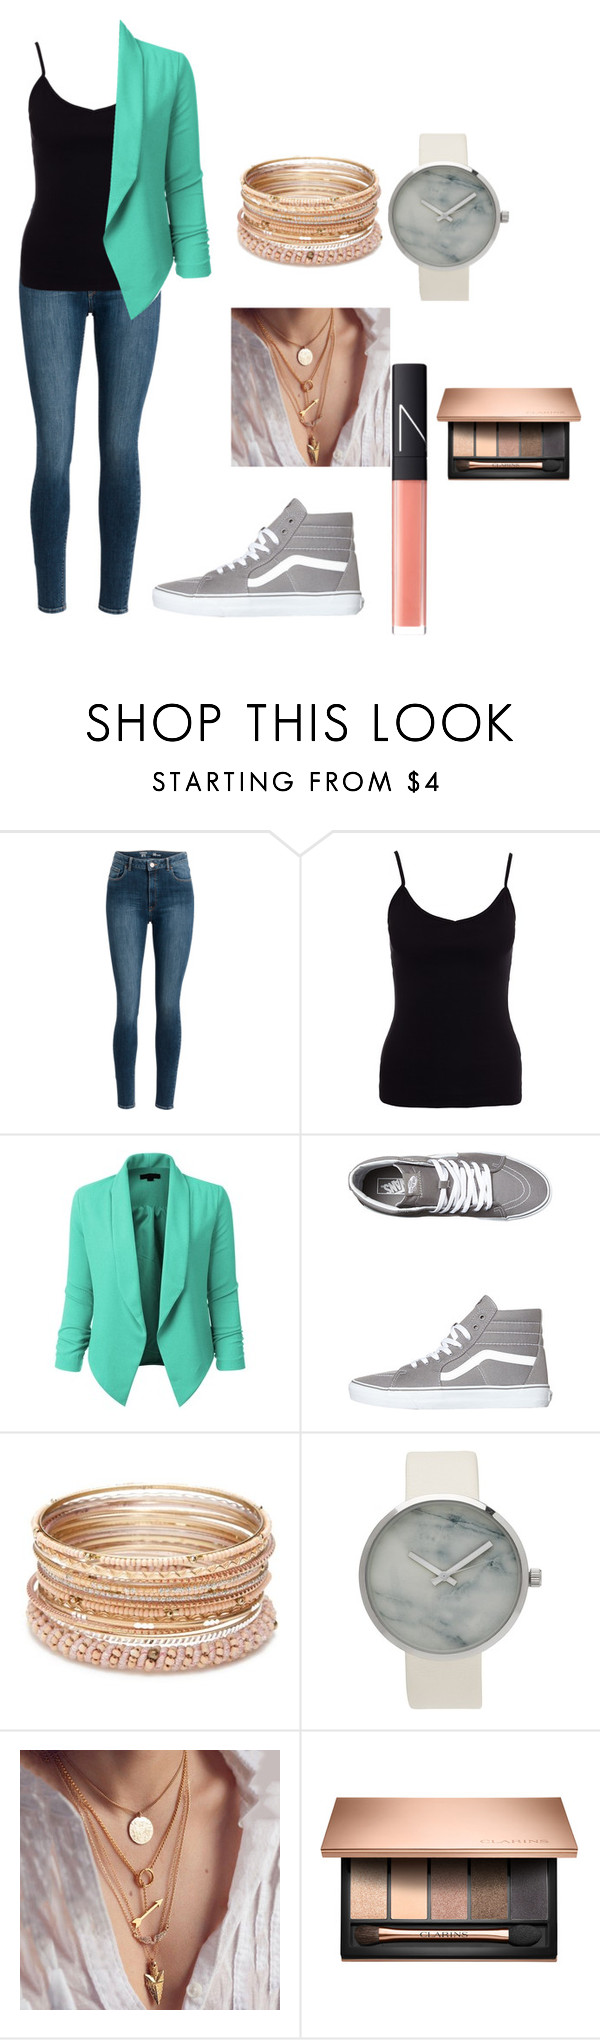 """TEAS STYLE"" by olivia-weissman on Polyvore featuring New Look, LE3NO, Vans, Red Camel and NARS Cosmetics"